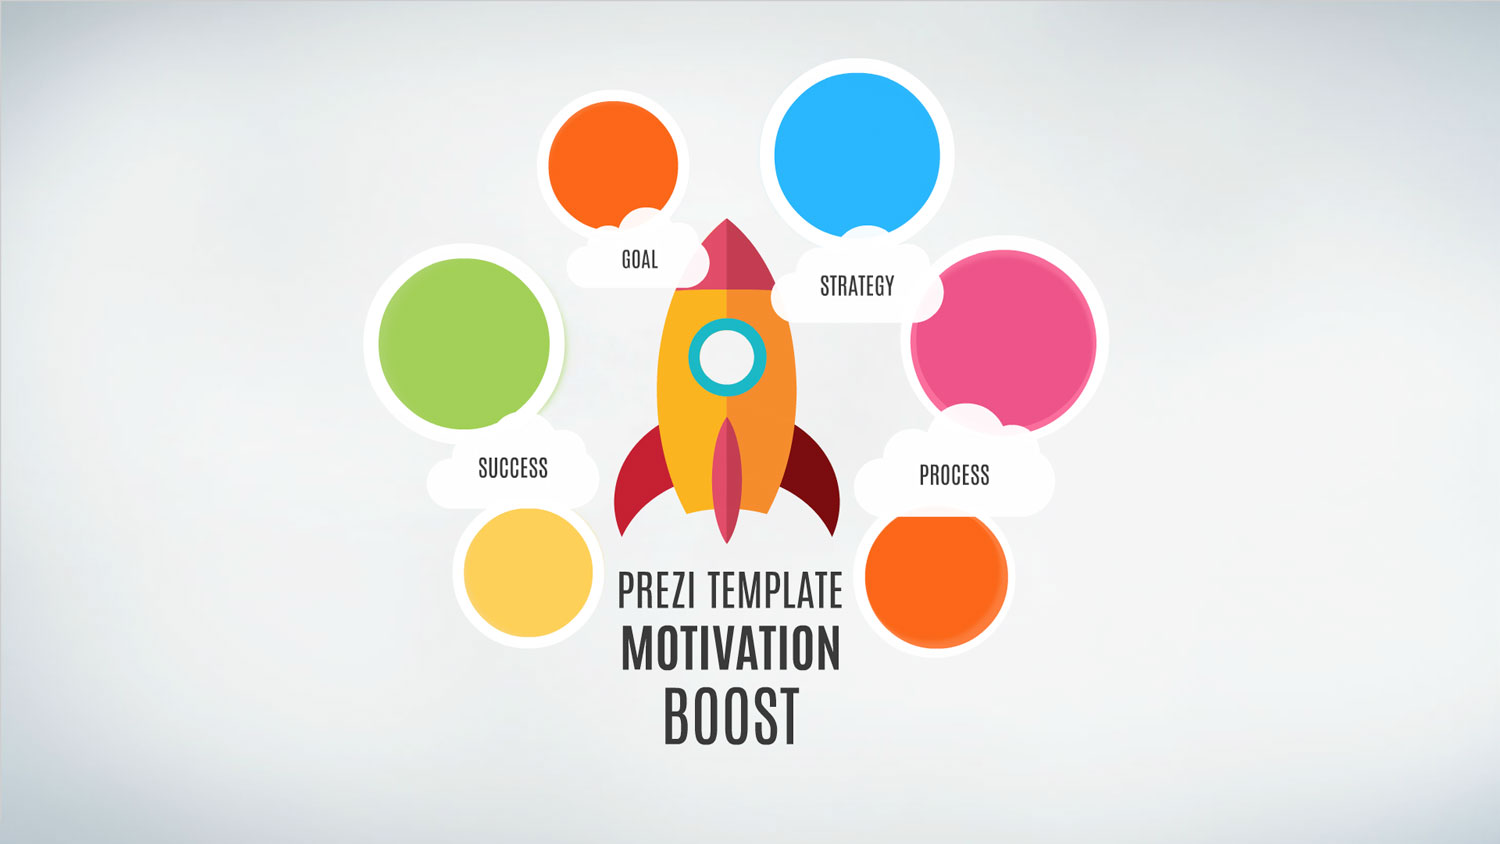 Motivation Prezi Template with a rocket boosts into space on the Prezi D background